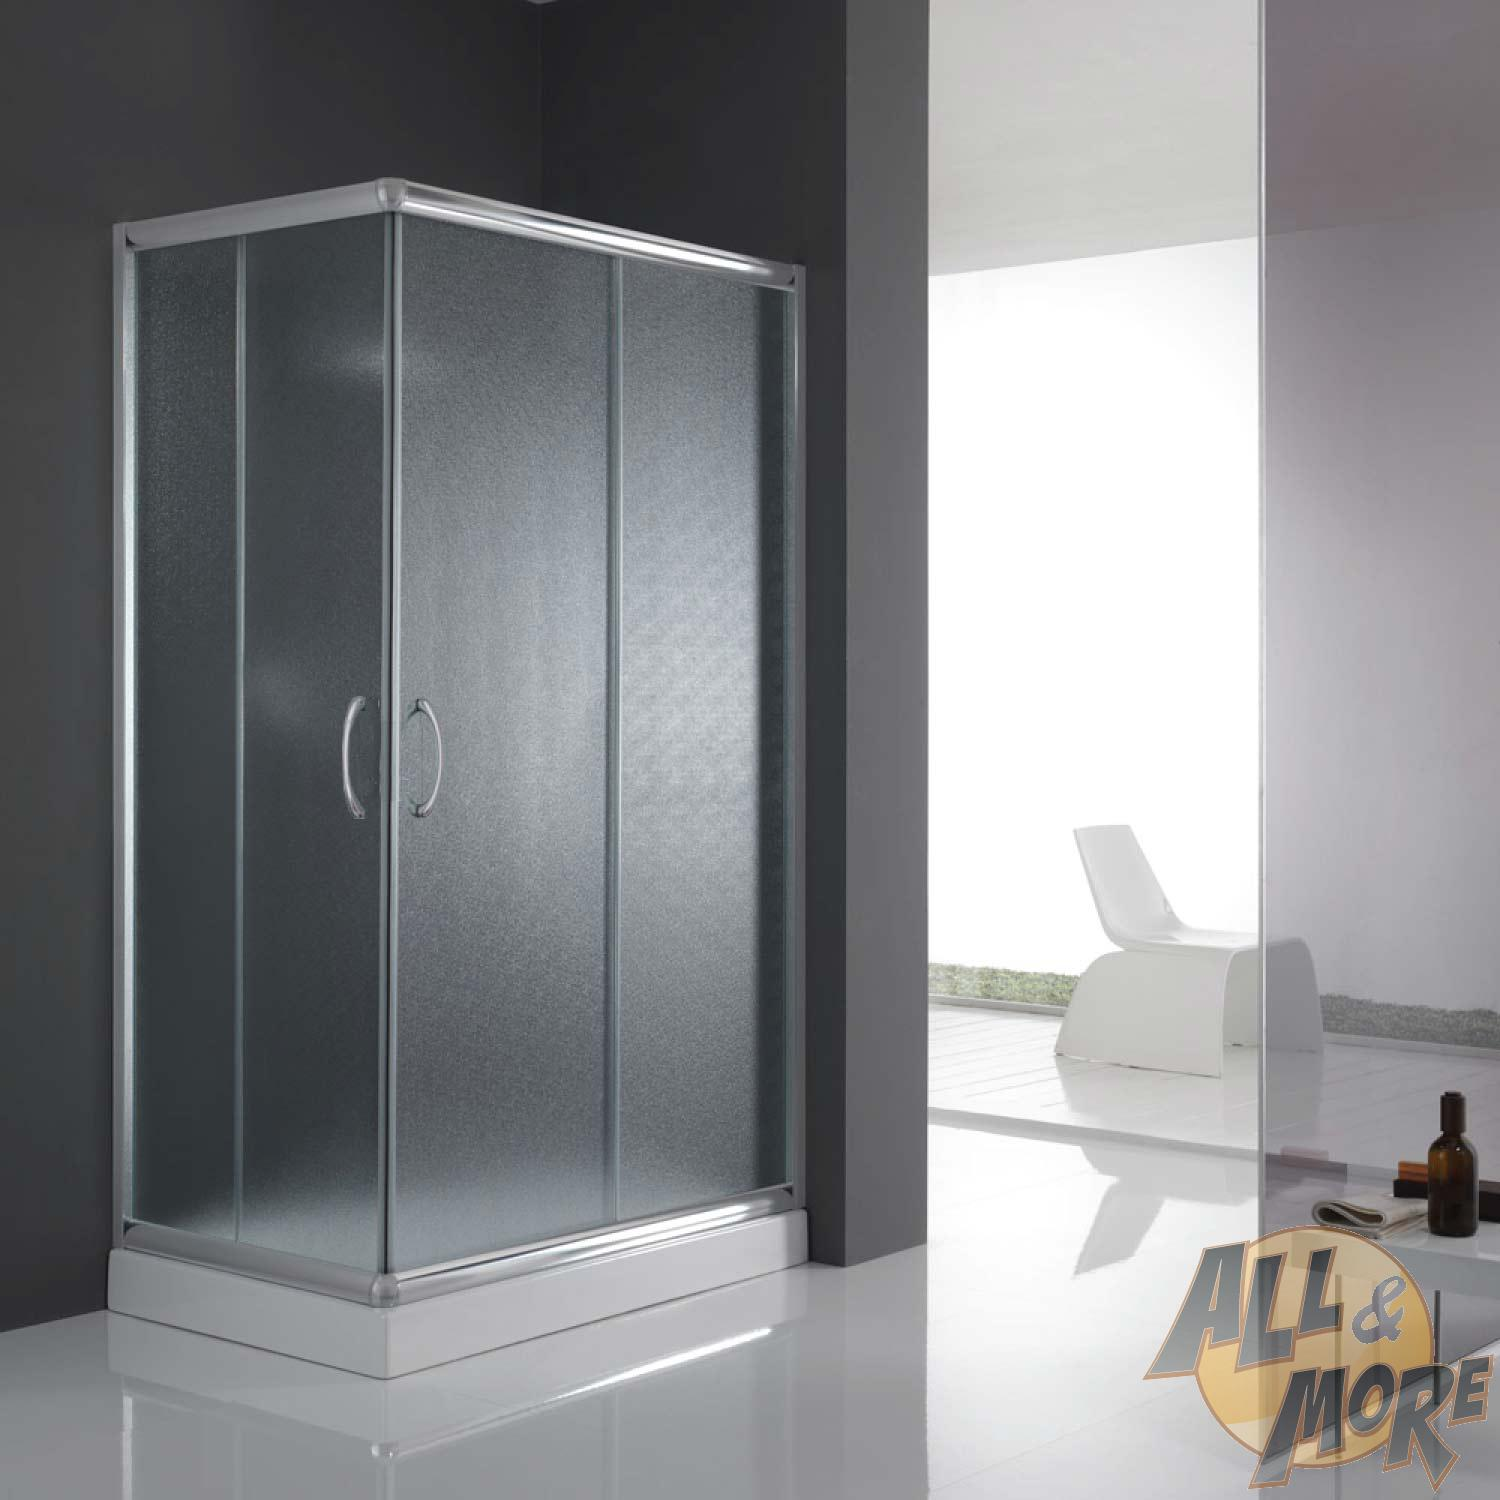 cabine de douche paroi de douche 90x70 h185 cm verre opaque angulaire alabama ebay. Black Bedroom Furniture Sets. Home Design Ideas